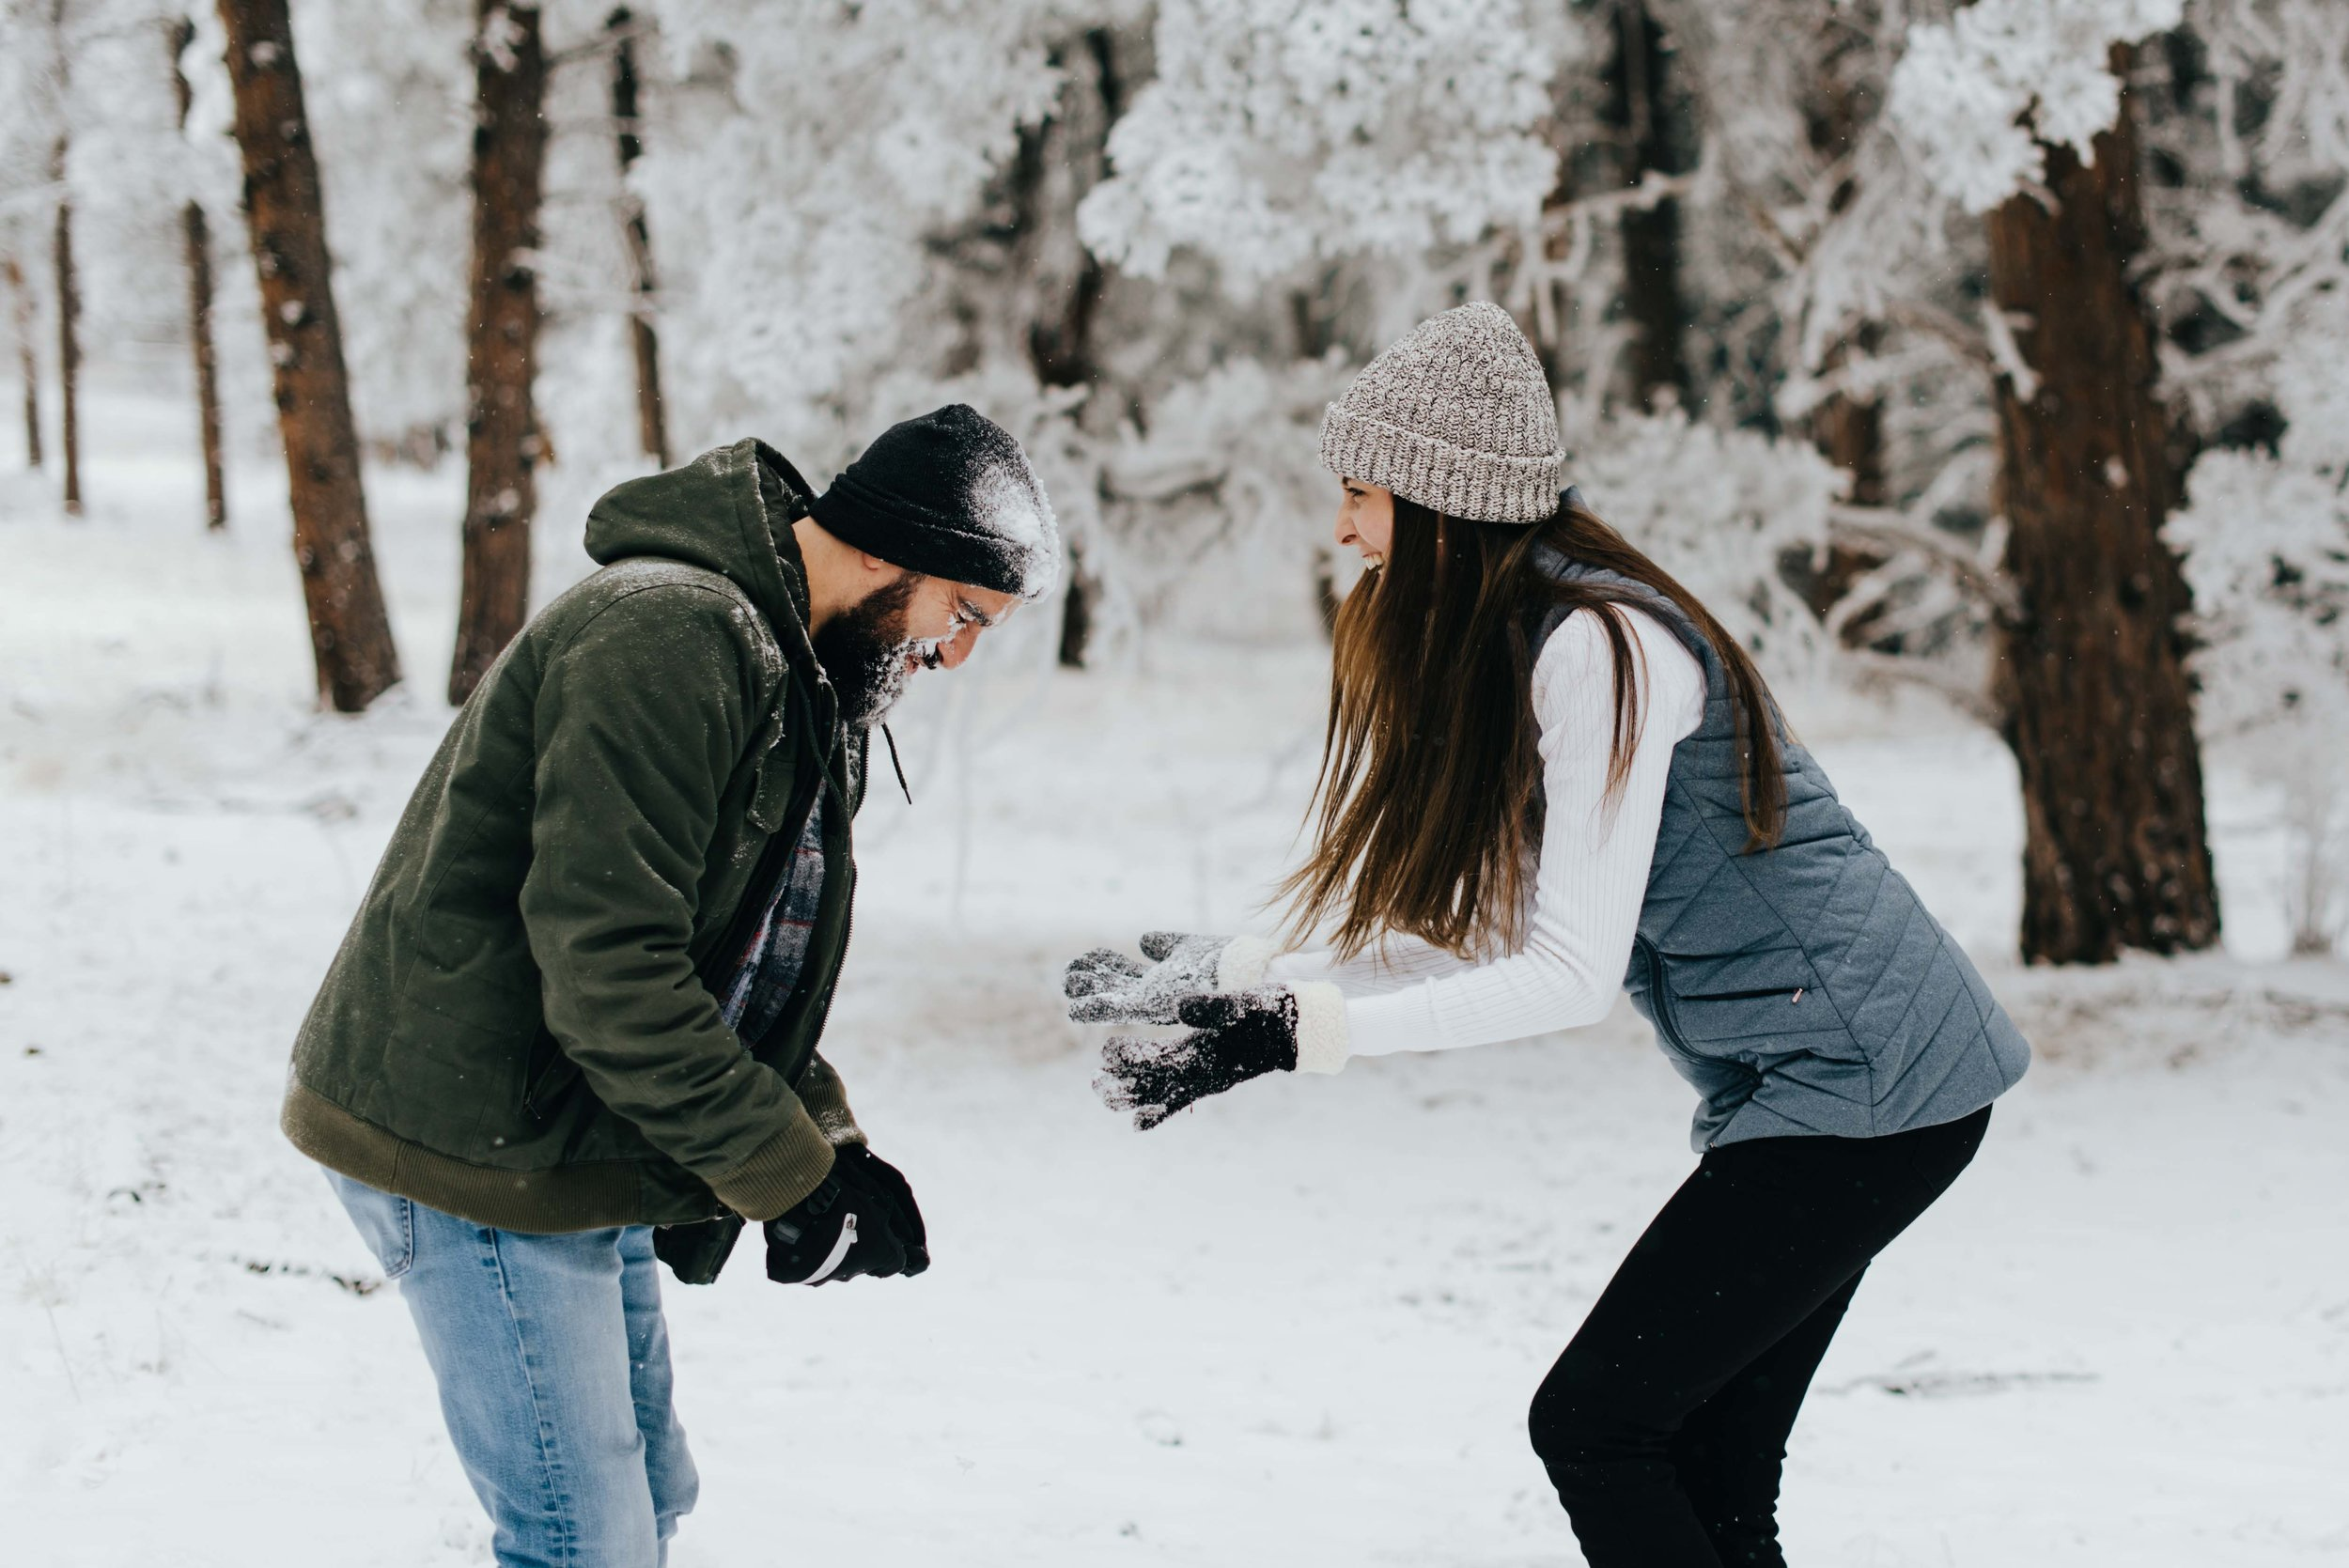 Nik and Tani during their snowball fight!